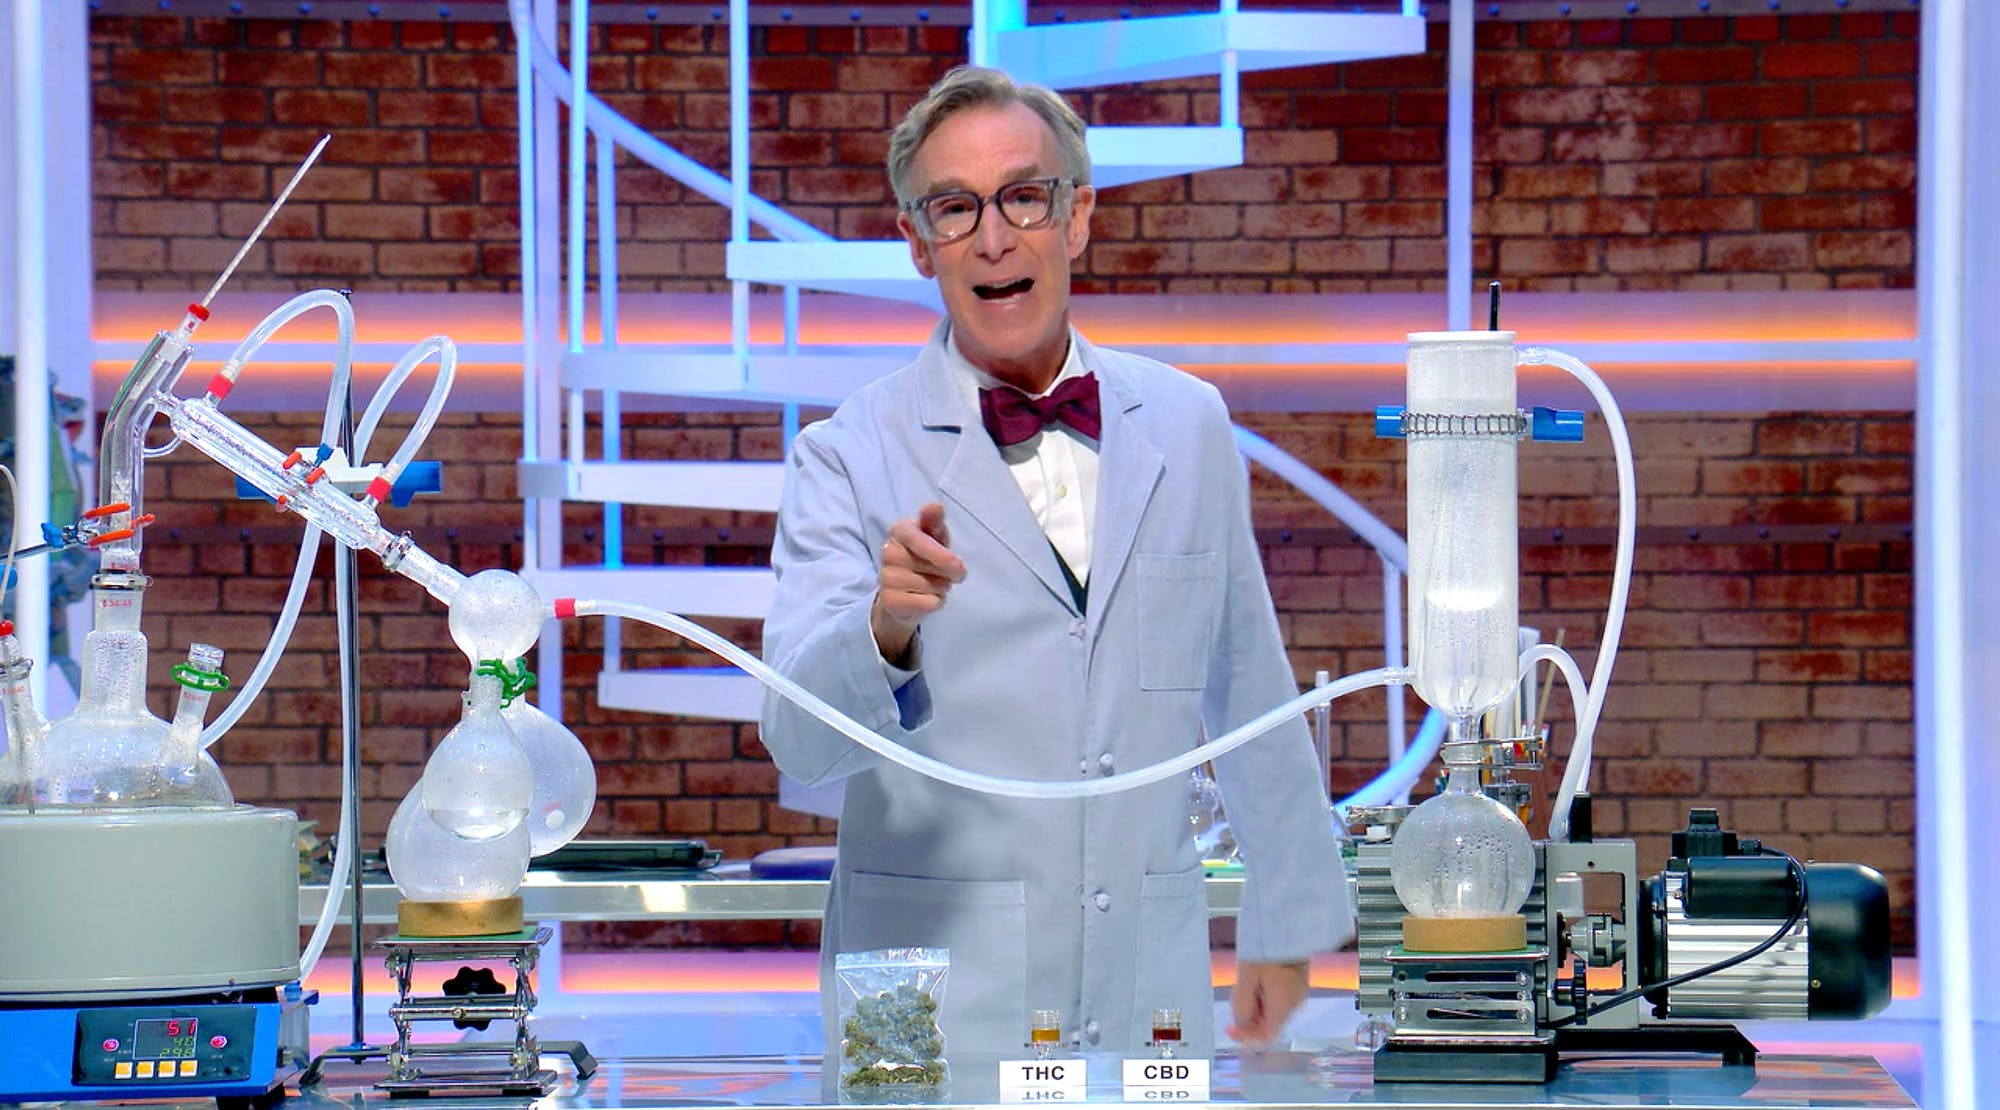 BillNyeCannabis The United Nations just warned member states to keep recreational cannabis illegal